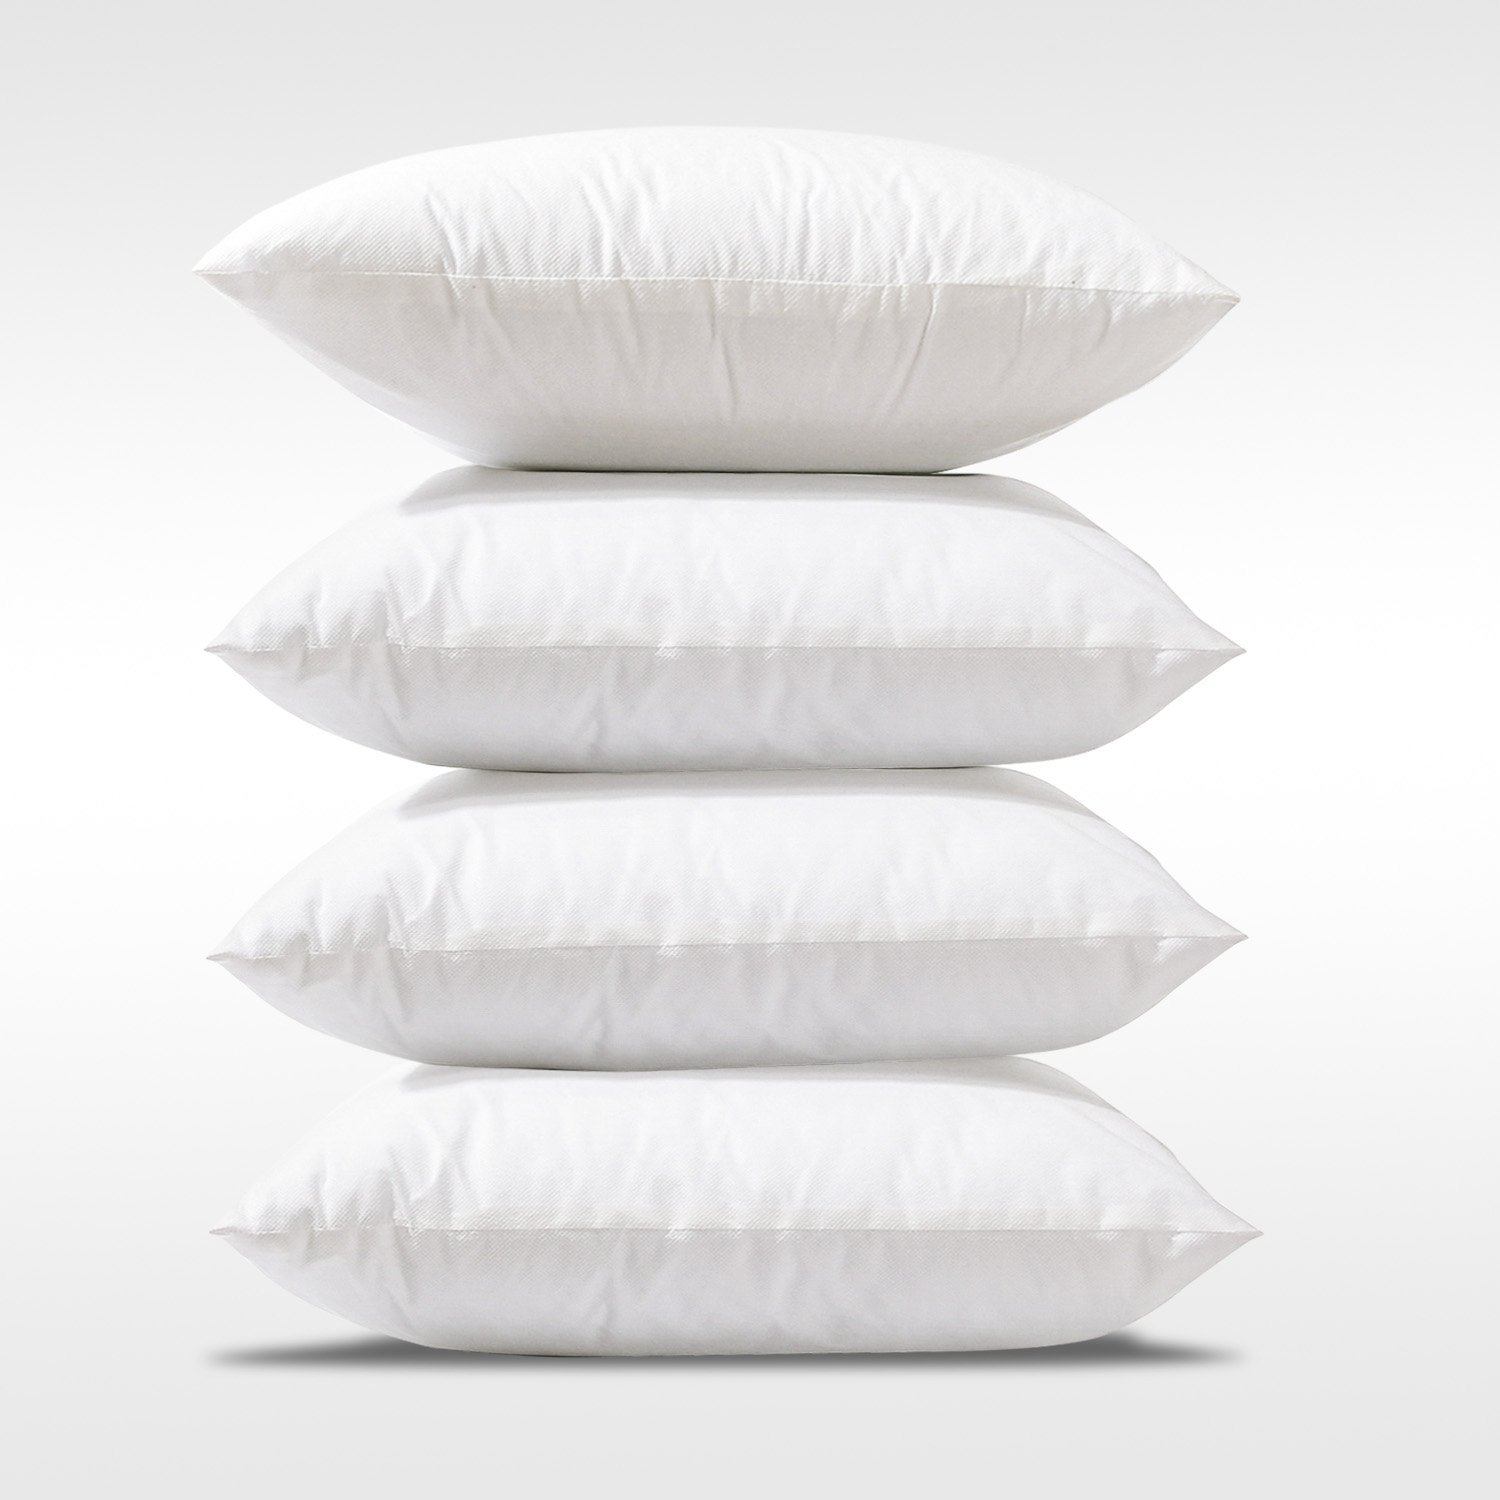 PHANTOSCOPE 4 Packs Polyester Throw Pillow Insert Sham Square Form Sofa Bed Cushion Cover White 18 x 18 inch for Home Decor